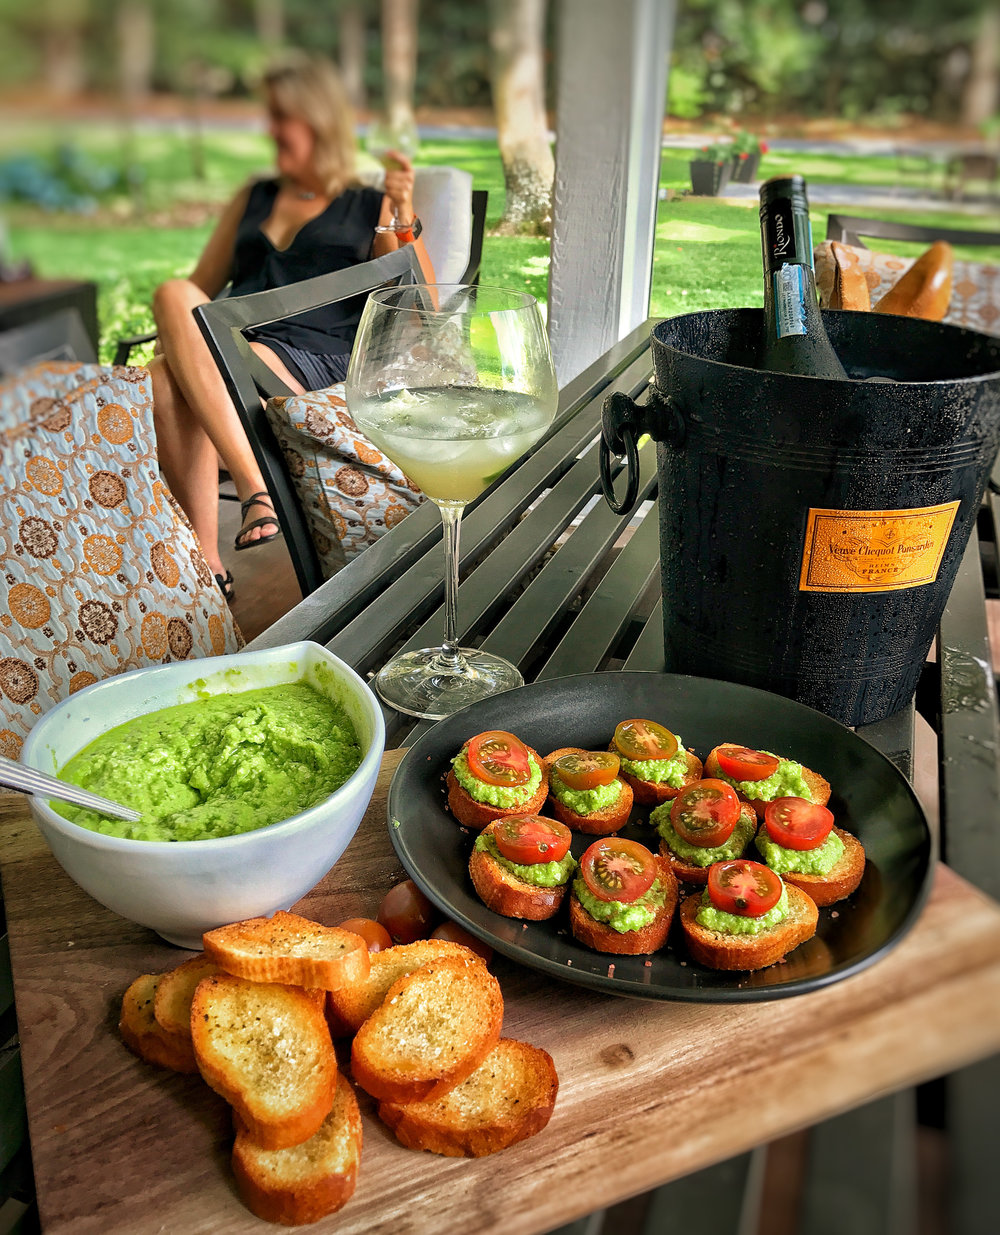 pea pesto cropped-.jpg